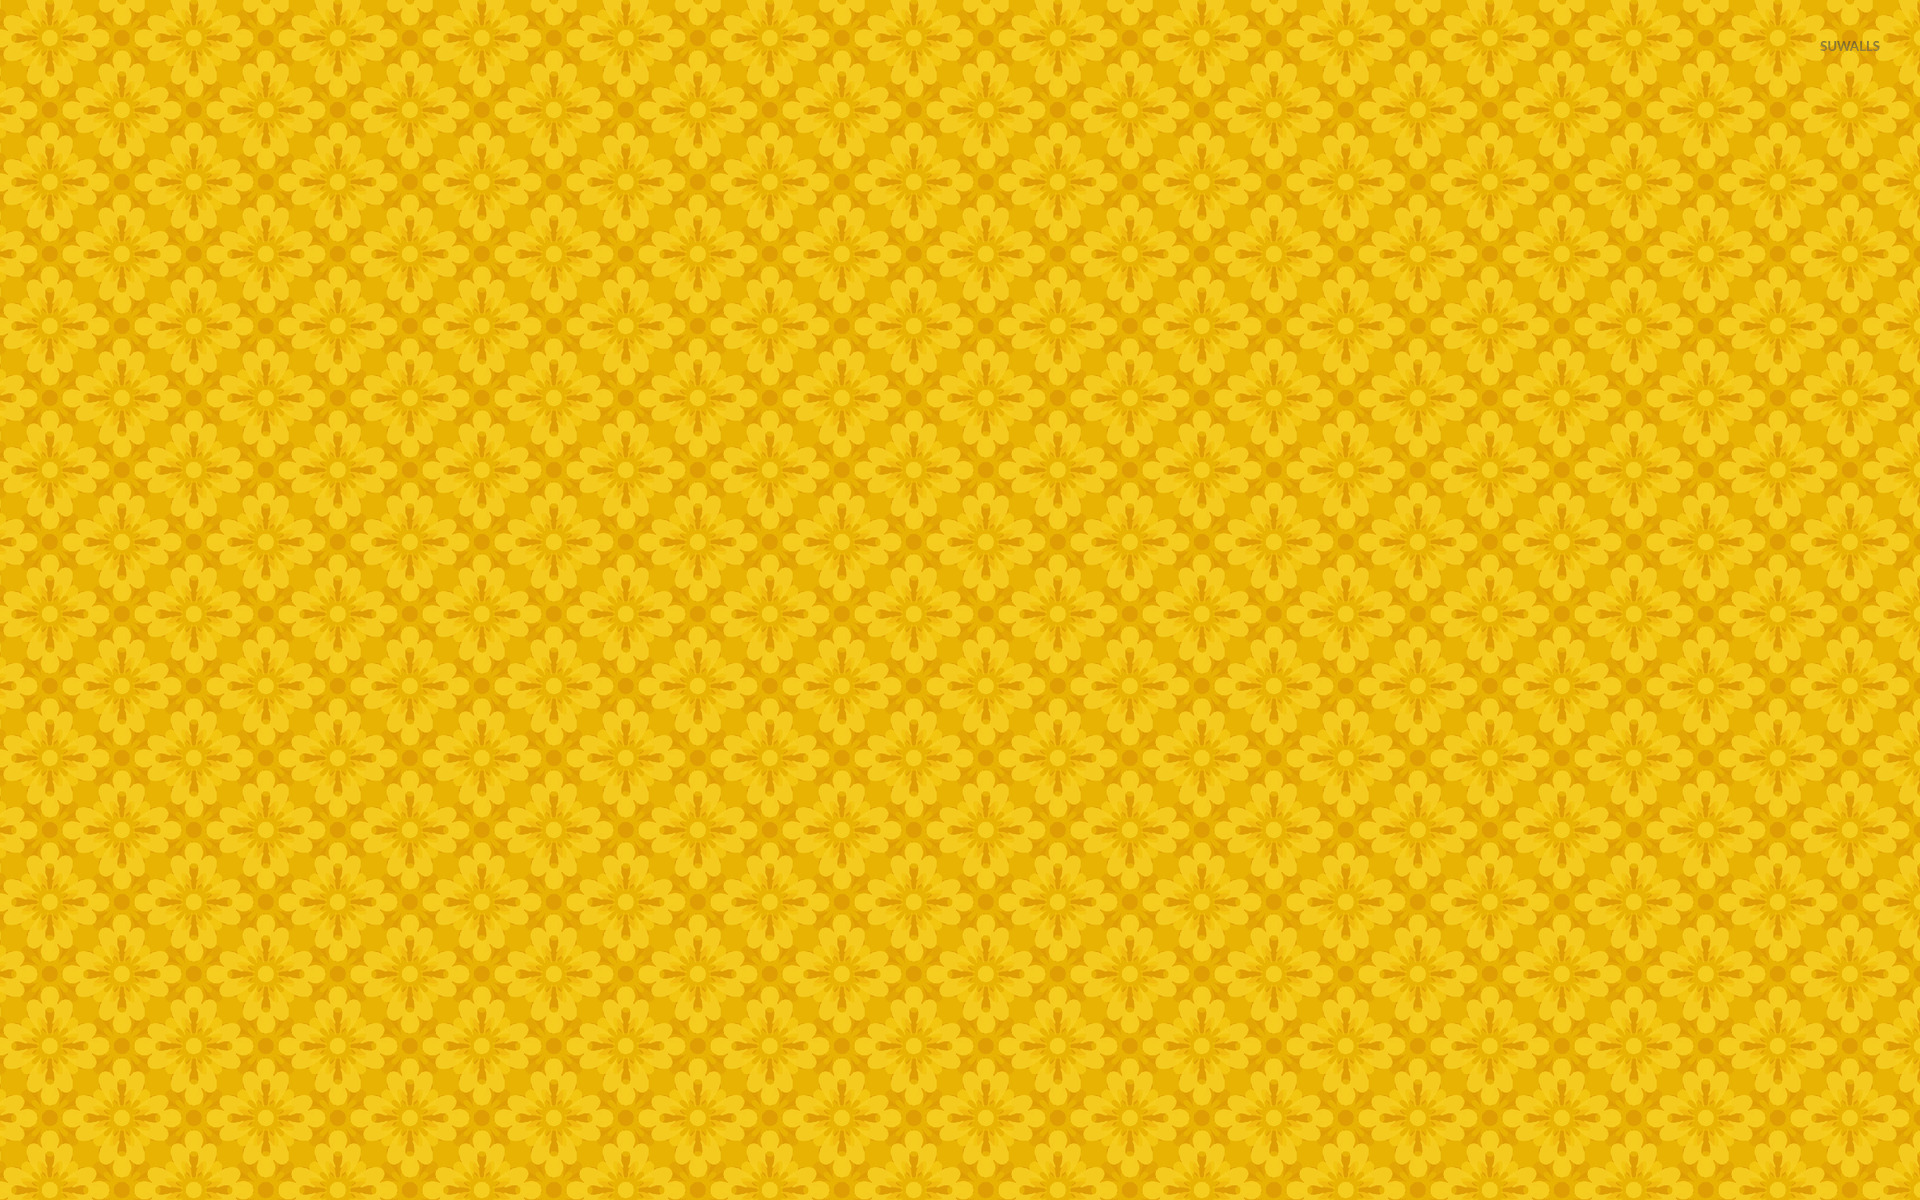 yellow floral pattern - photo #25